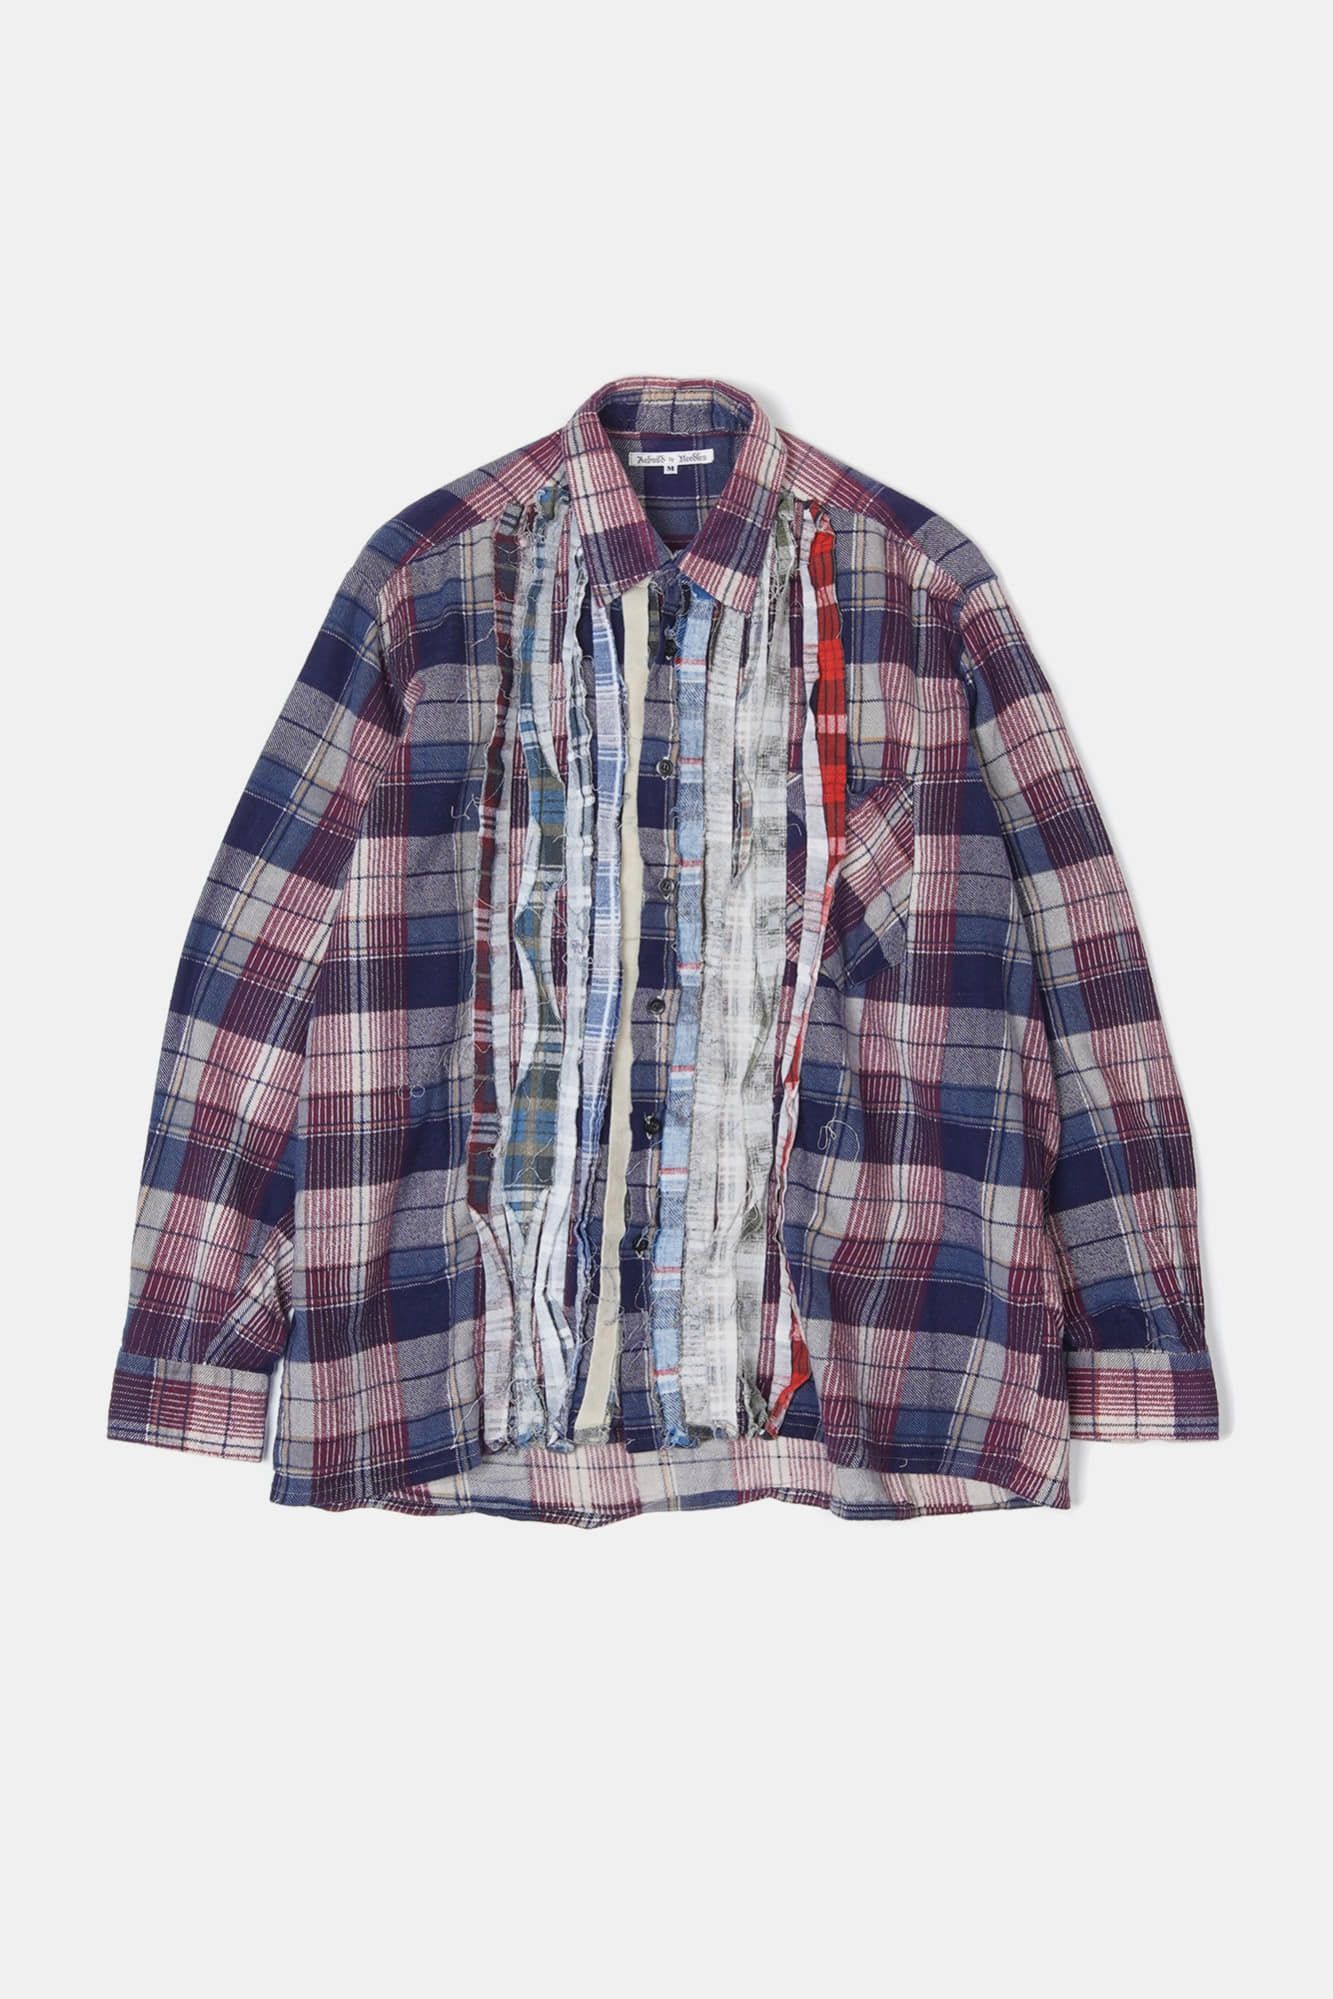 REBUILD BY NEEDLES Flannel Ribbon Shirt 1